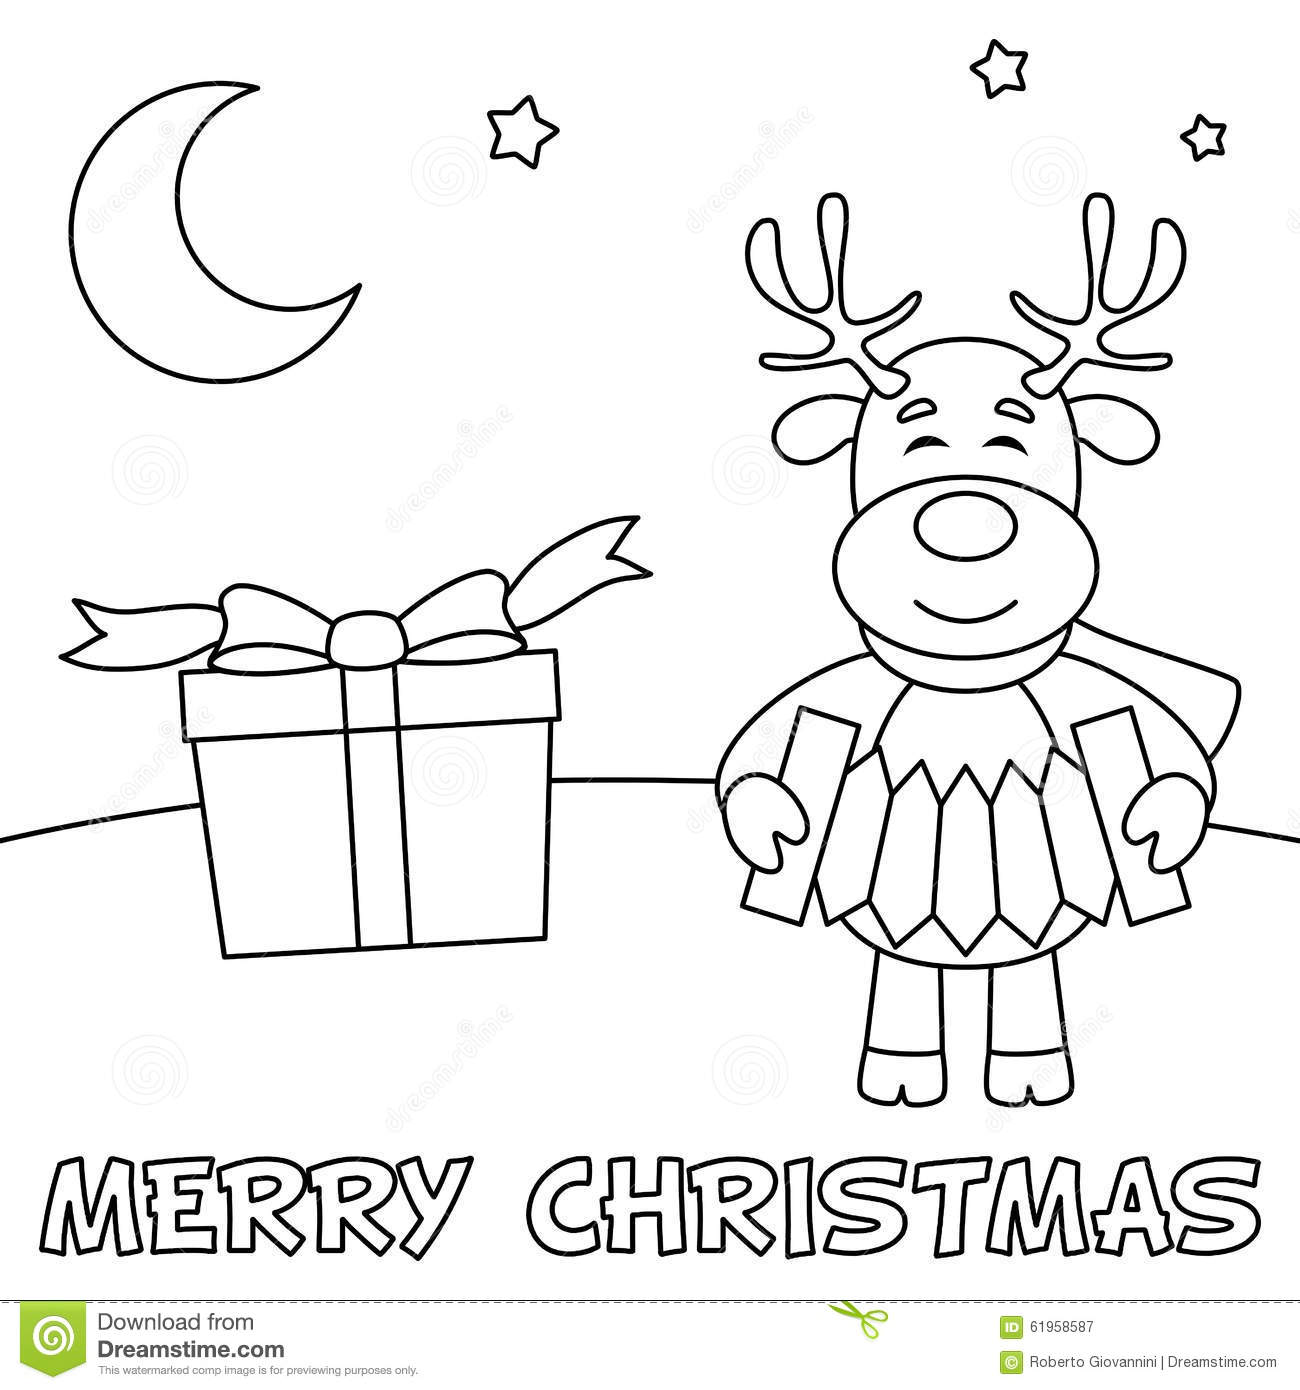 Coloring Christmas Card With Reindeer Stock Vector